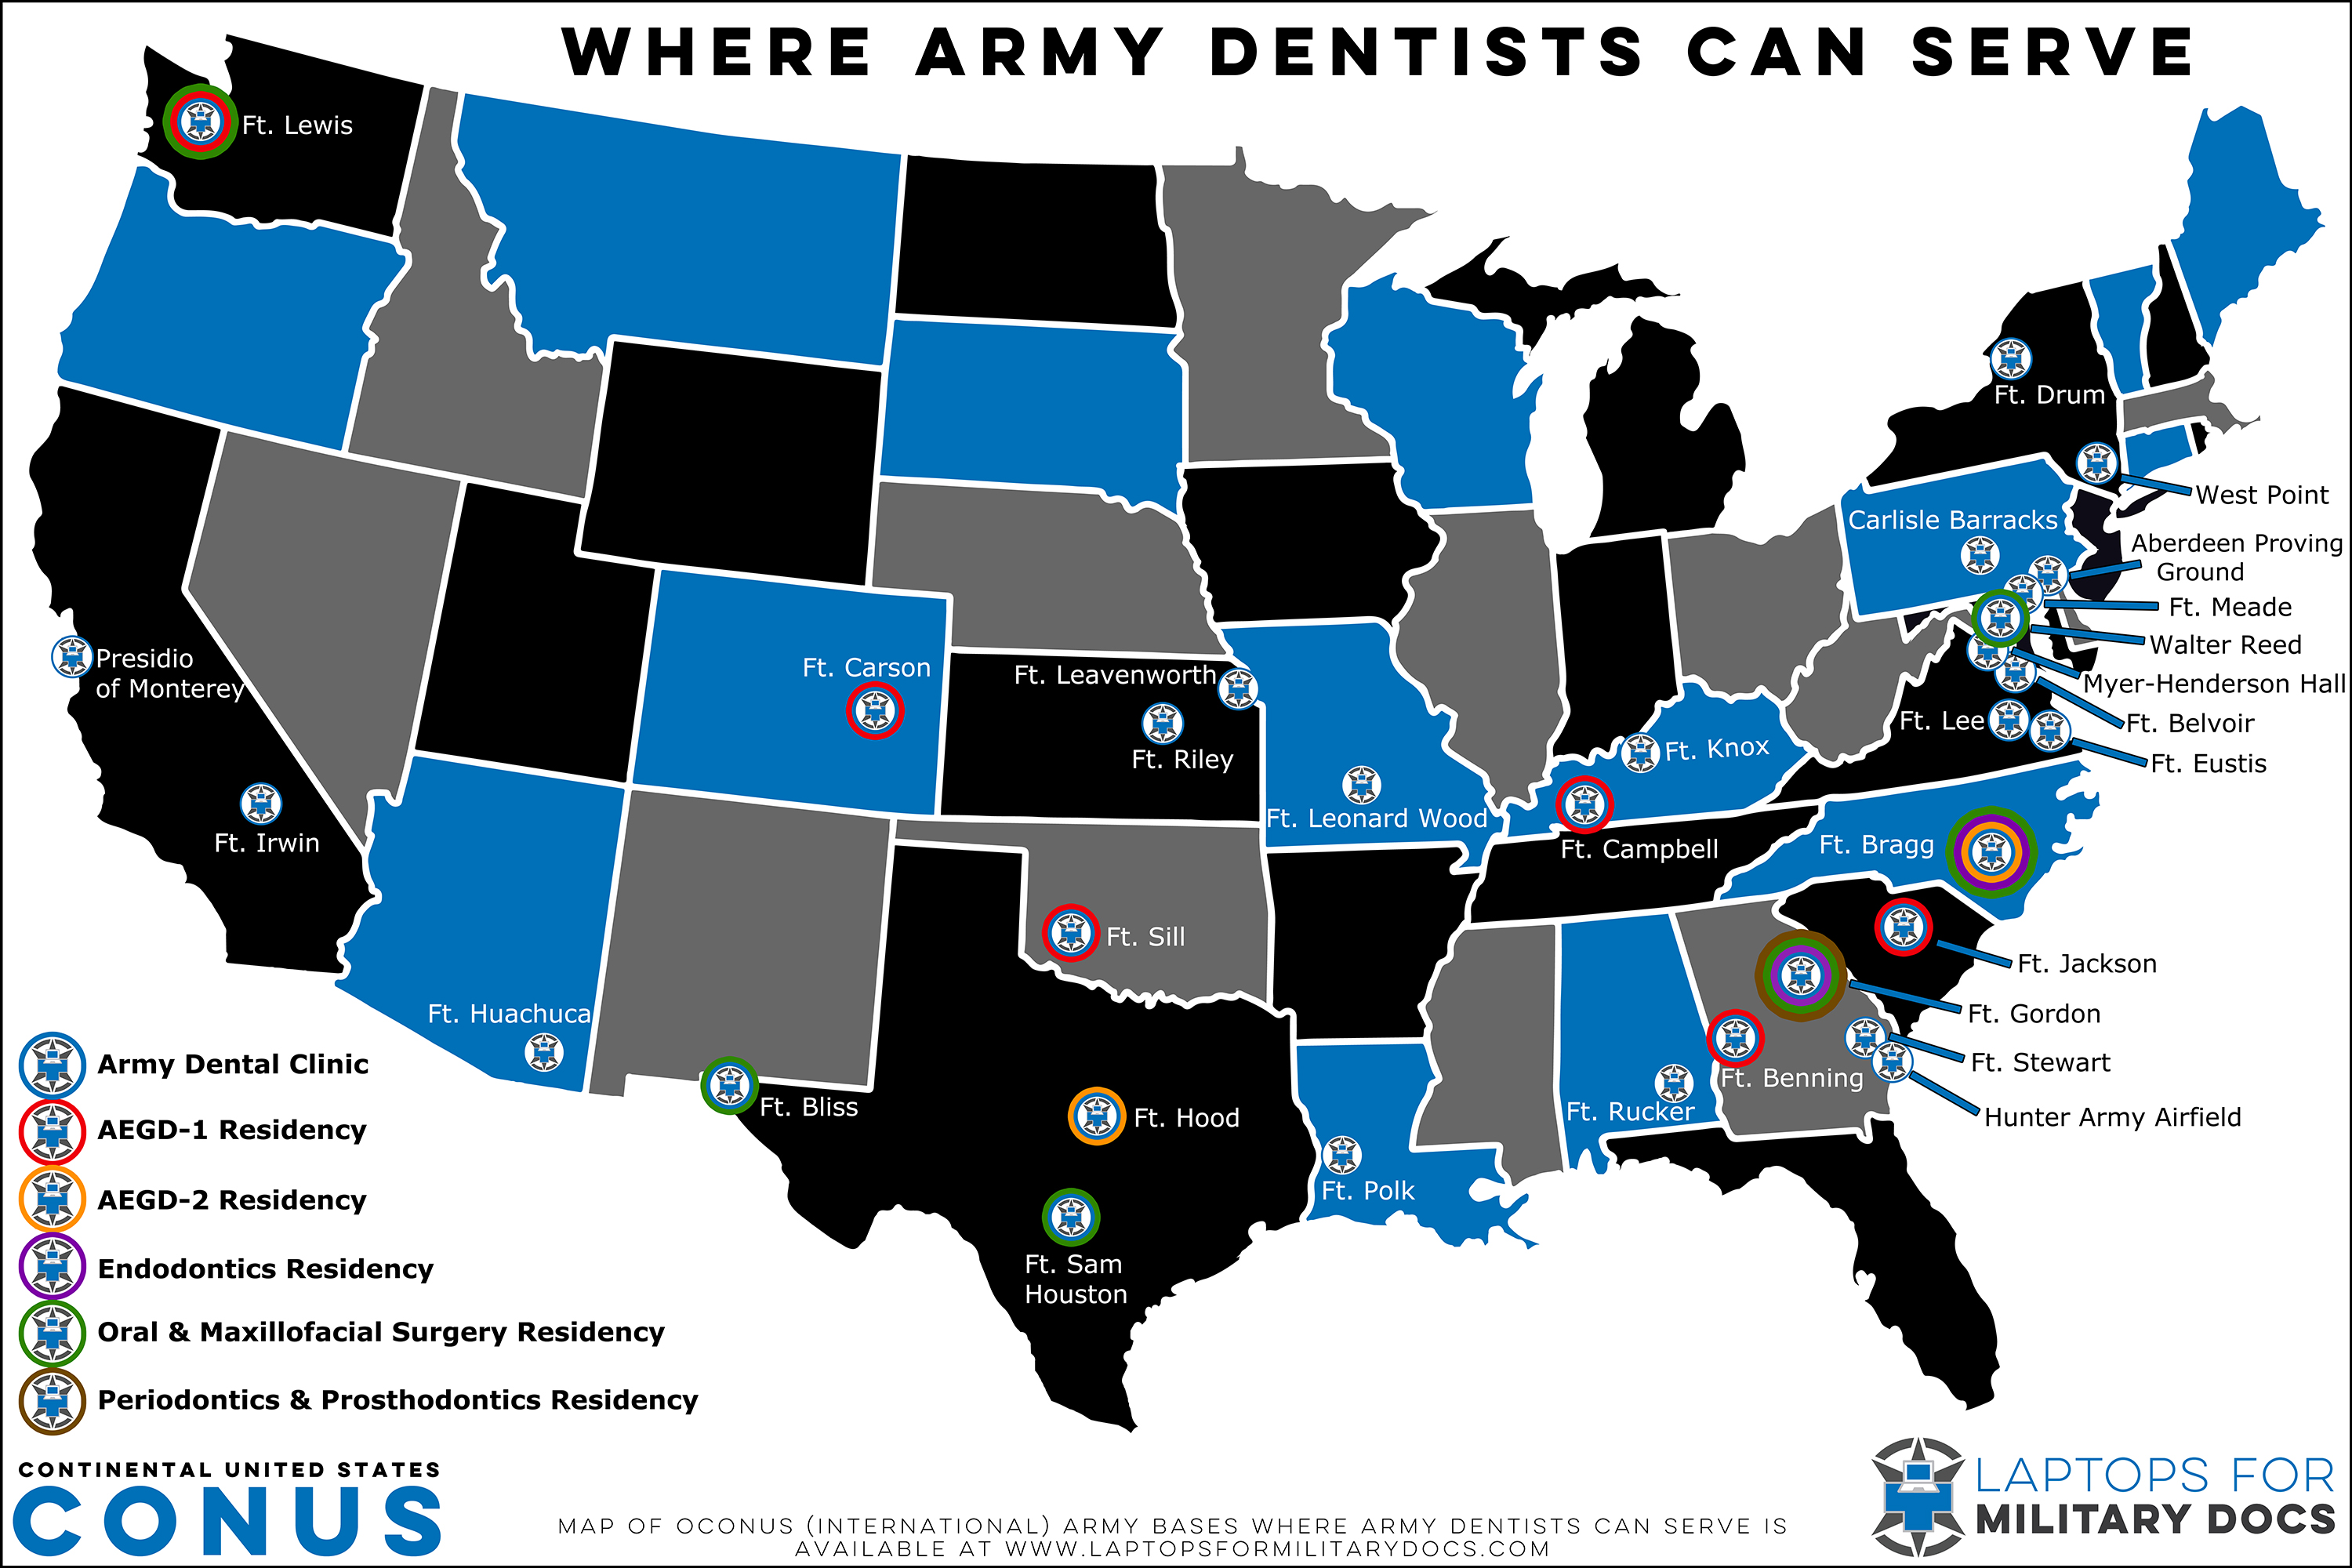 Map of Army Dental Bases Inside the Continental United States